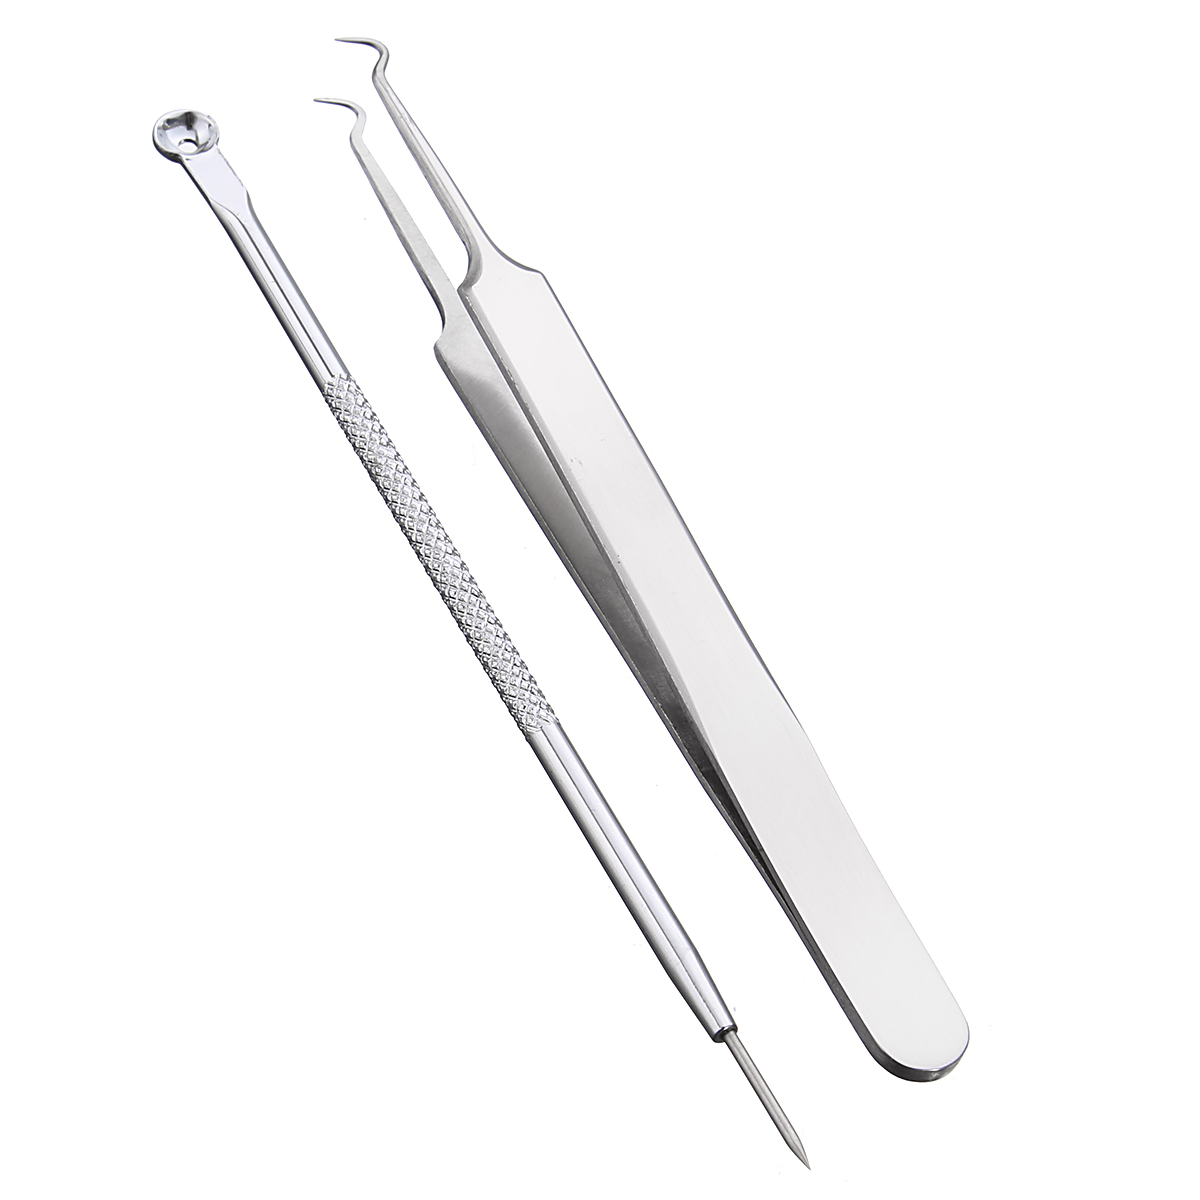 Luckyfine Pro Blackhead Acne Pimple Comedone Extractor Remover Tool Set OLAY Active Hydrating Beauty Fluid Original 6 oz (Pack of 3)